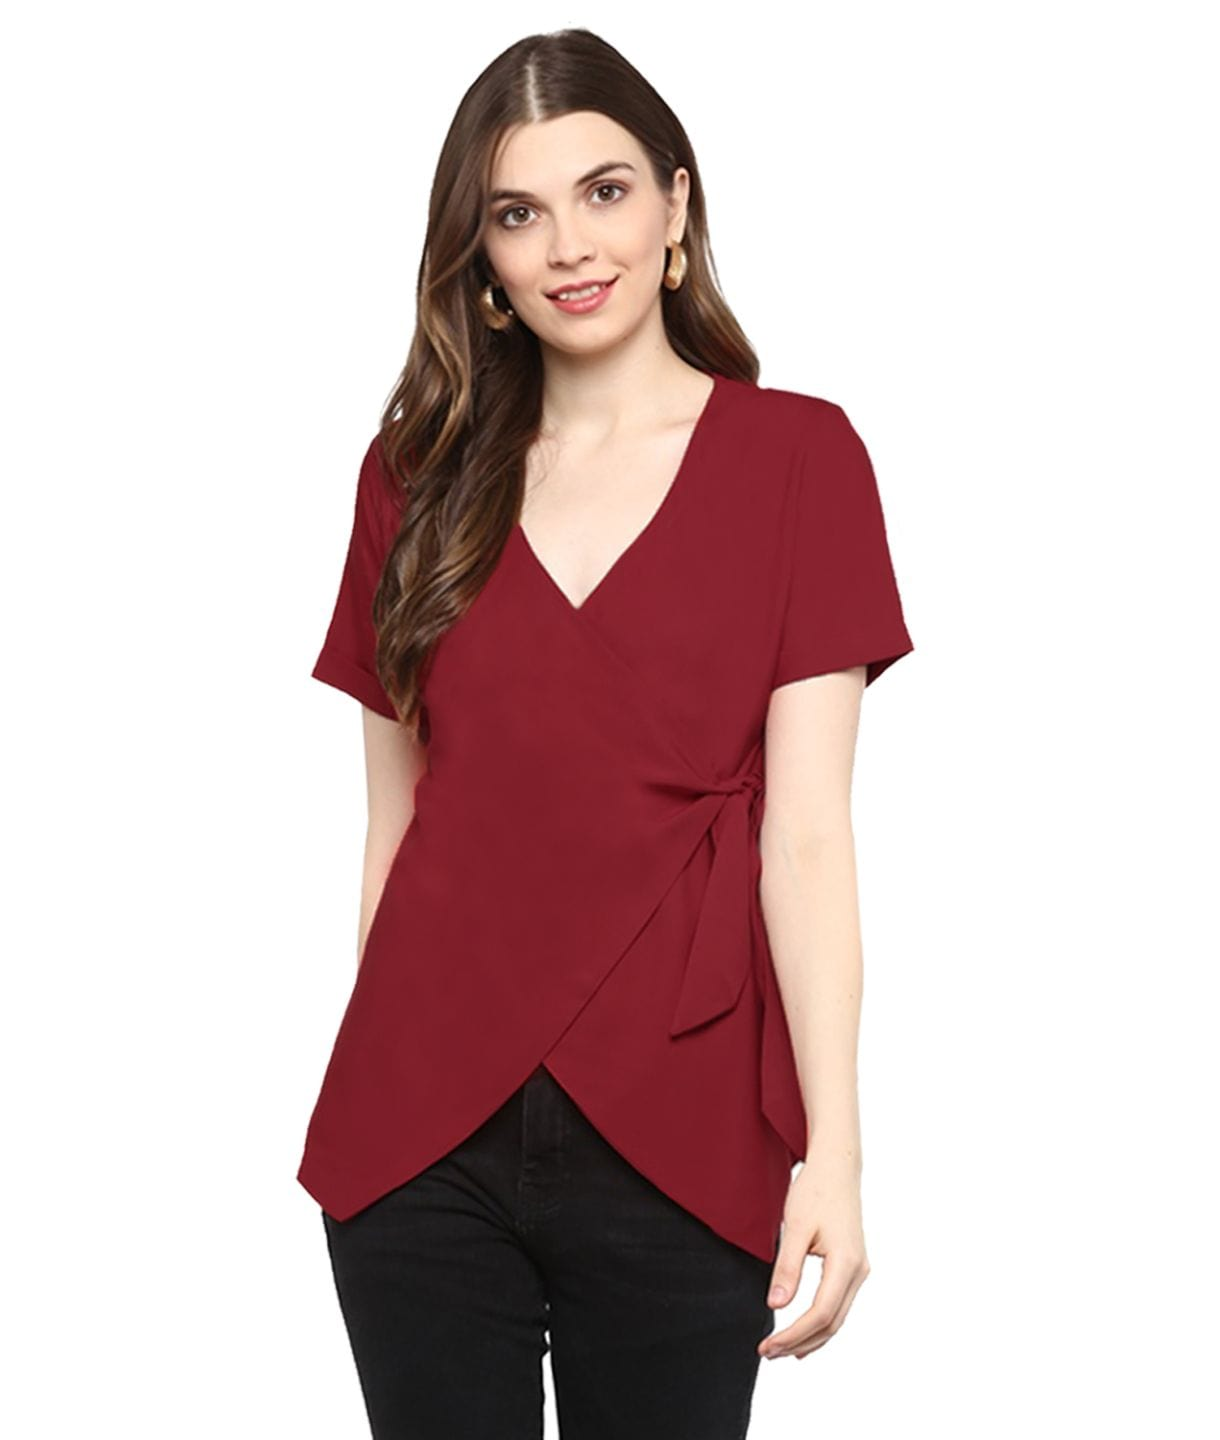 Reddish Maroon Solid Crepe Wrap Top